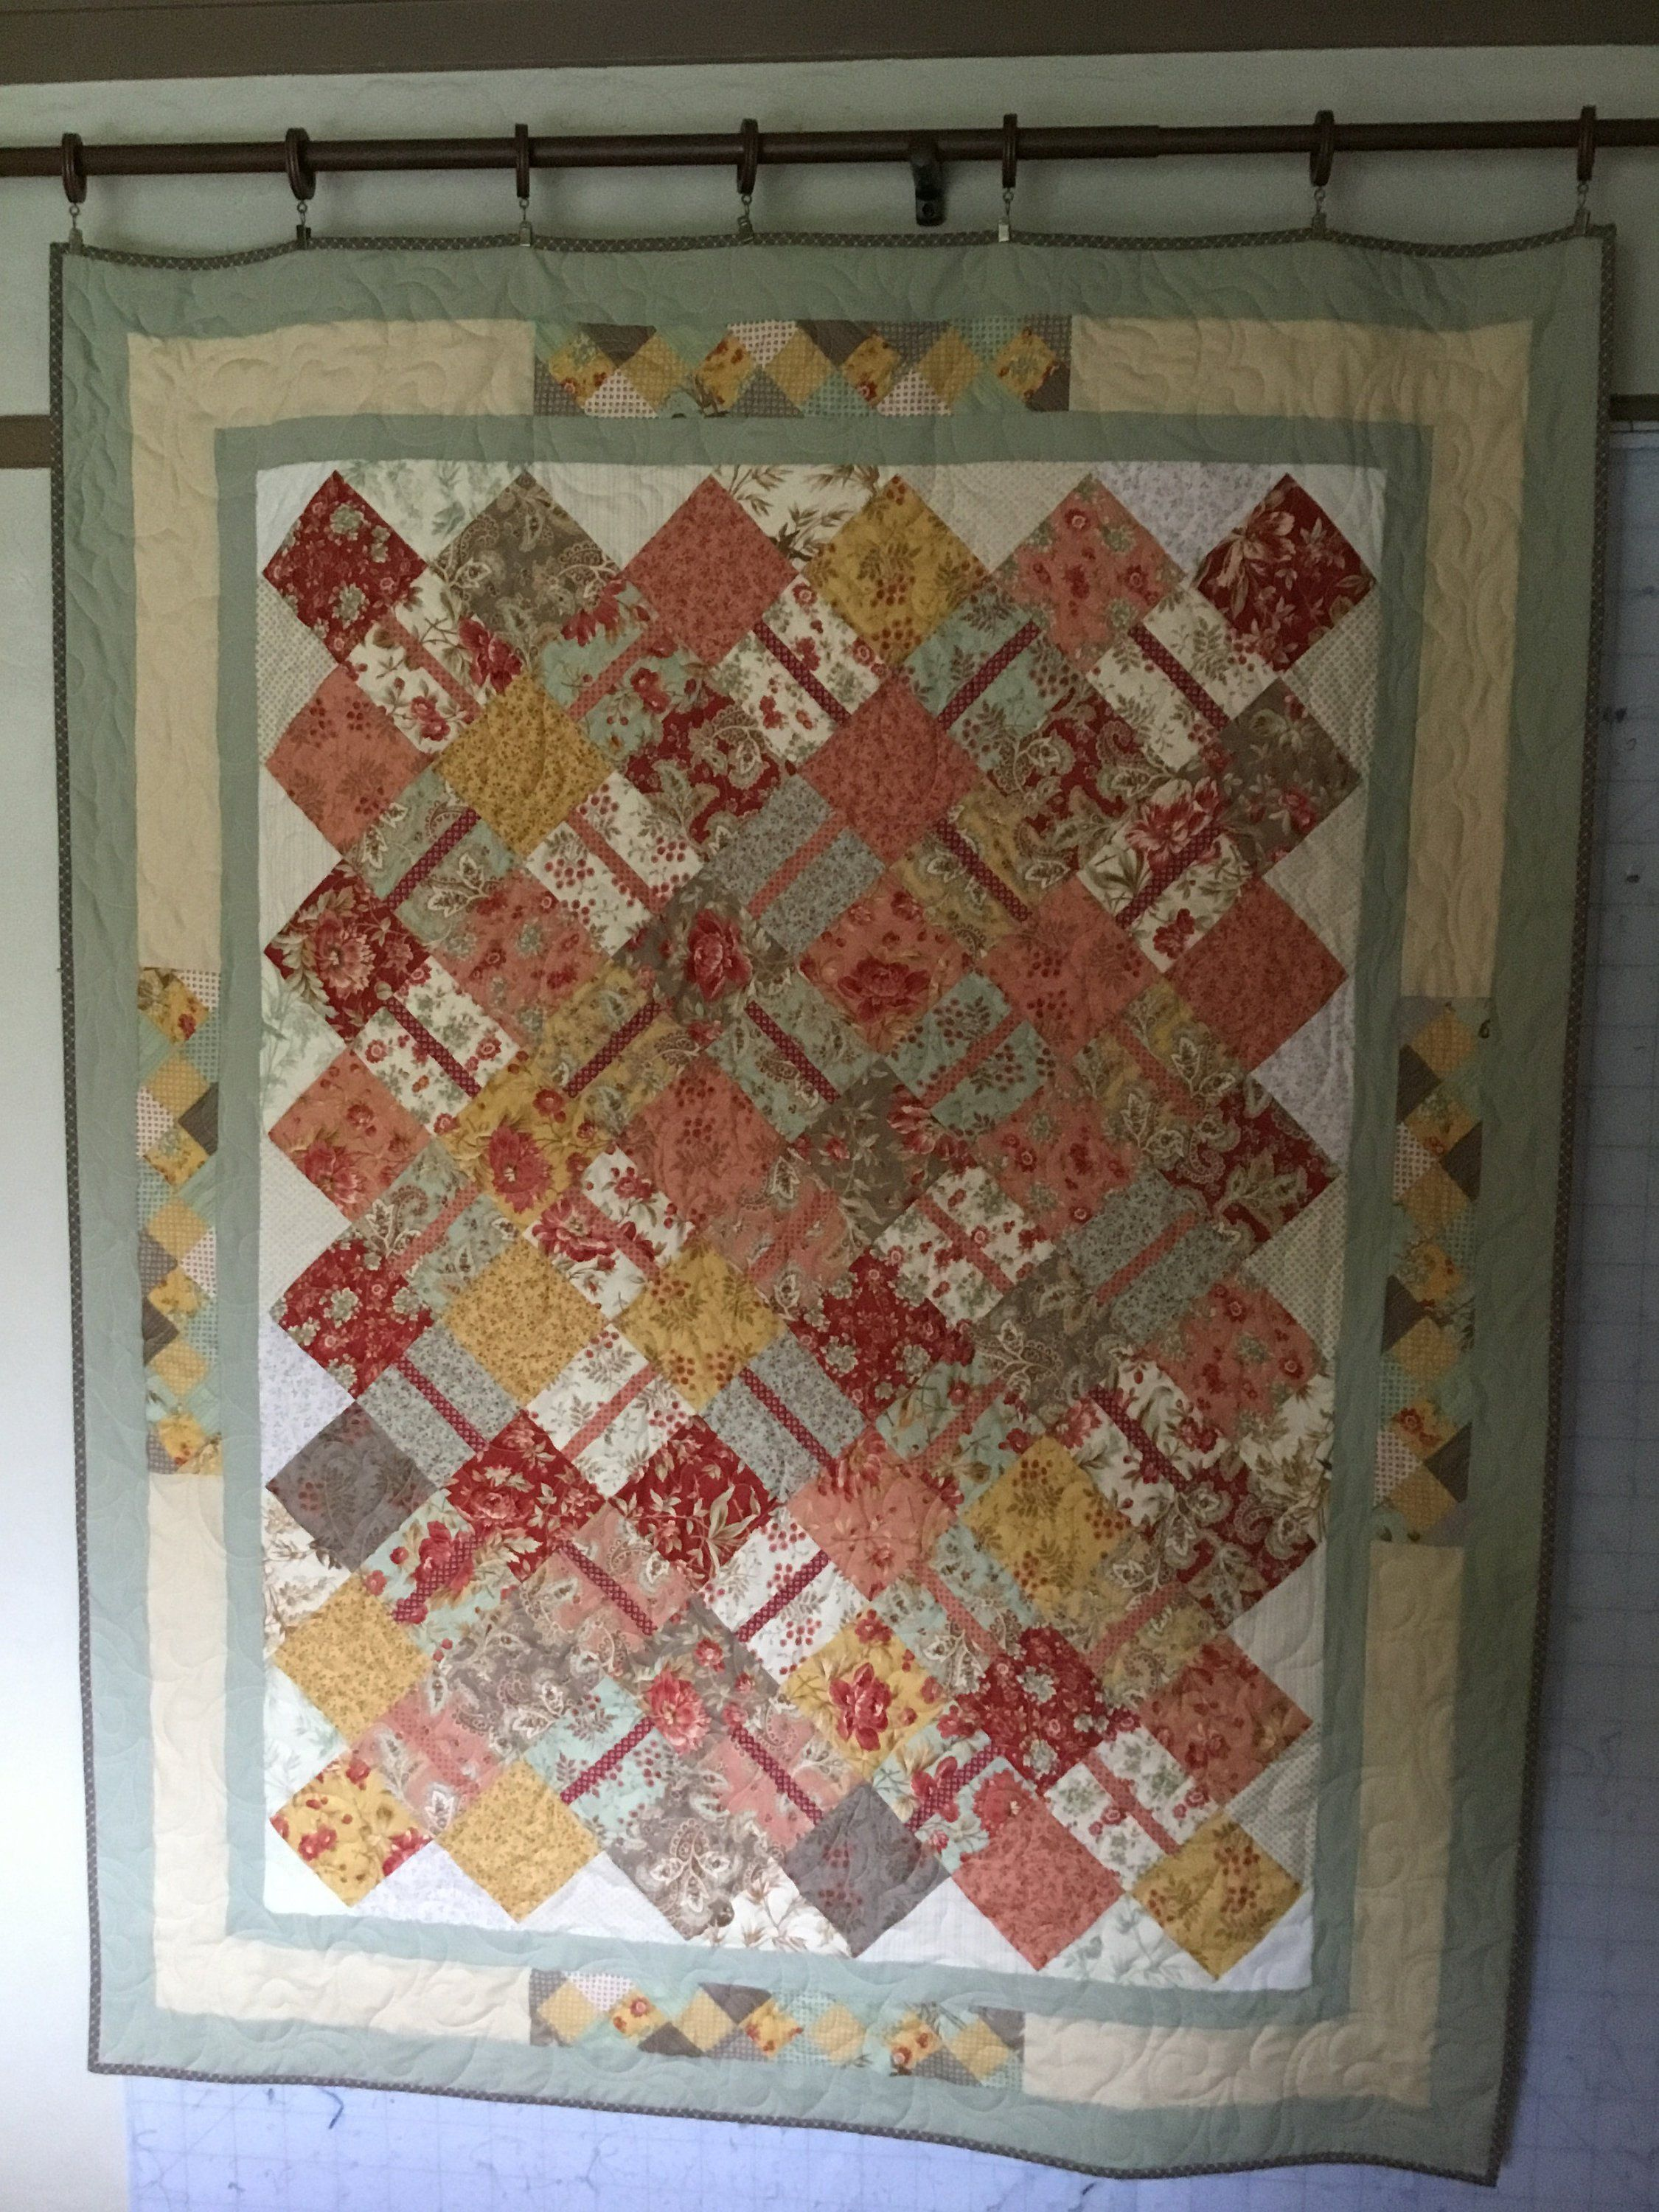 Homemade Quilts For Sale >> Paisley Floral Quilt Quilts For Sale Handmade Quilts Homemade